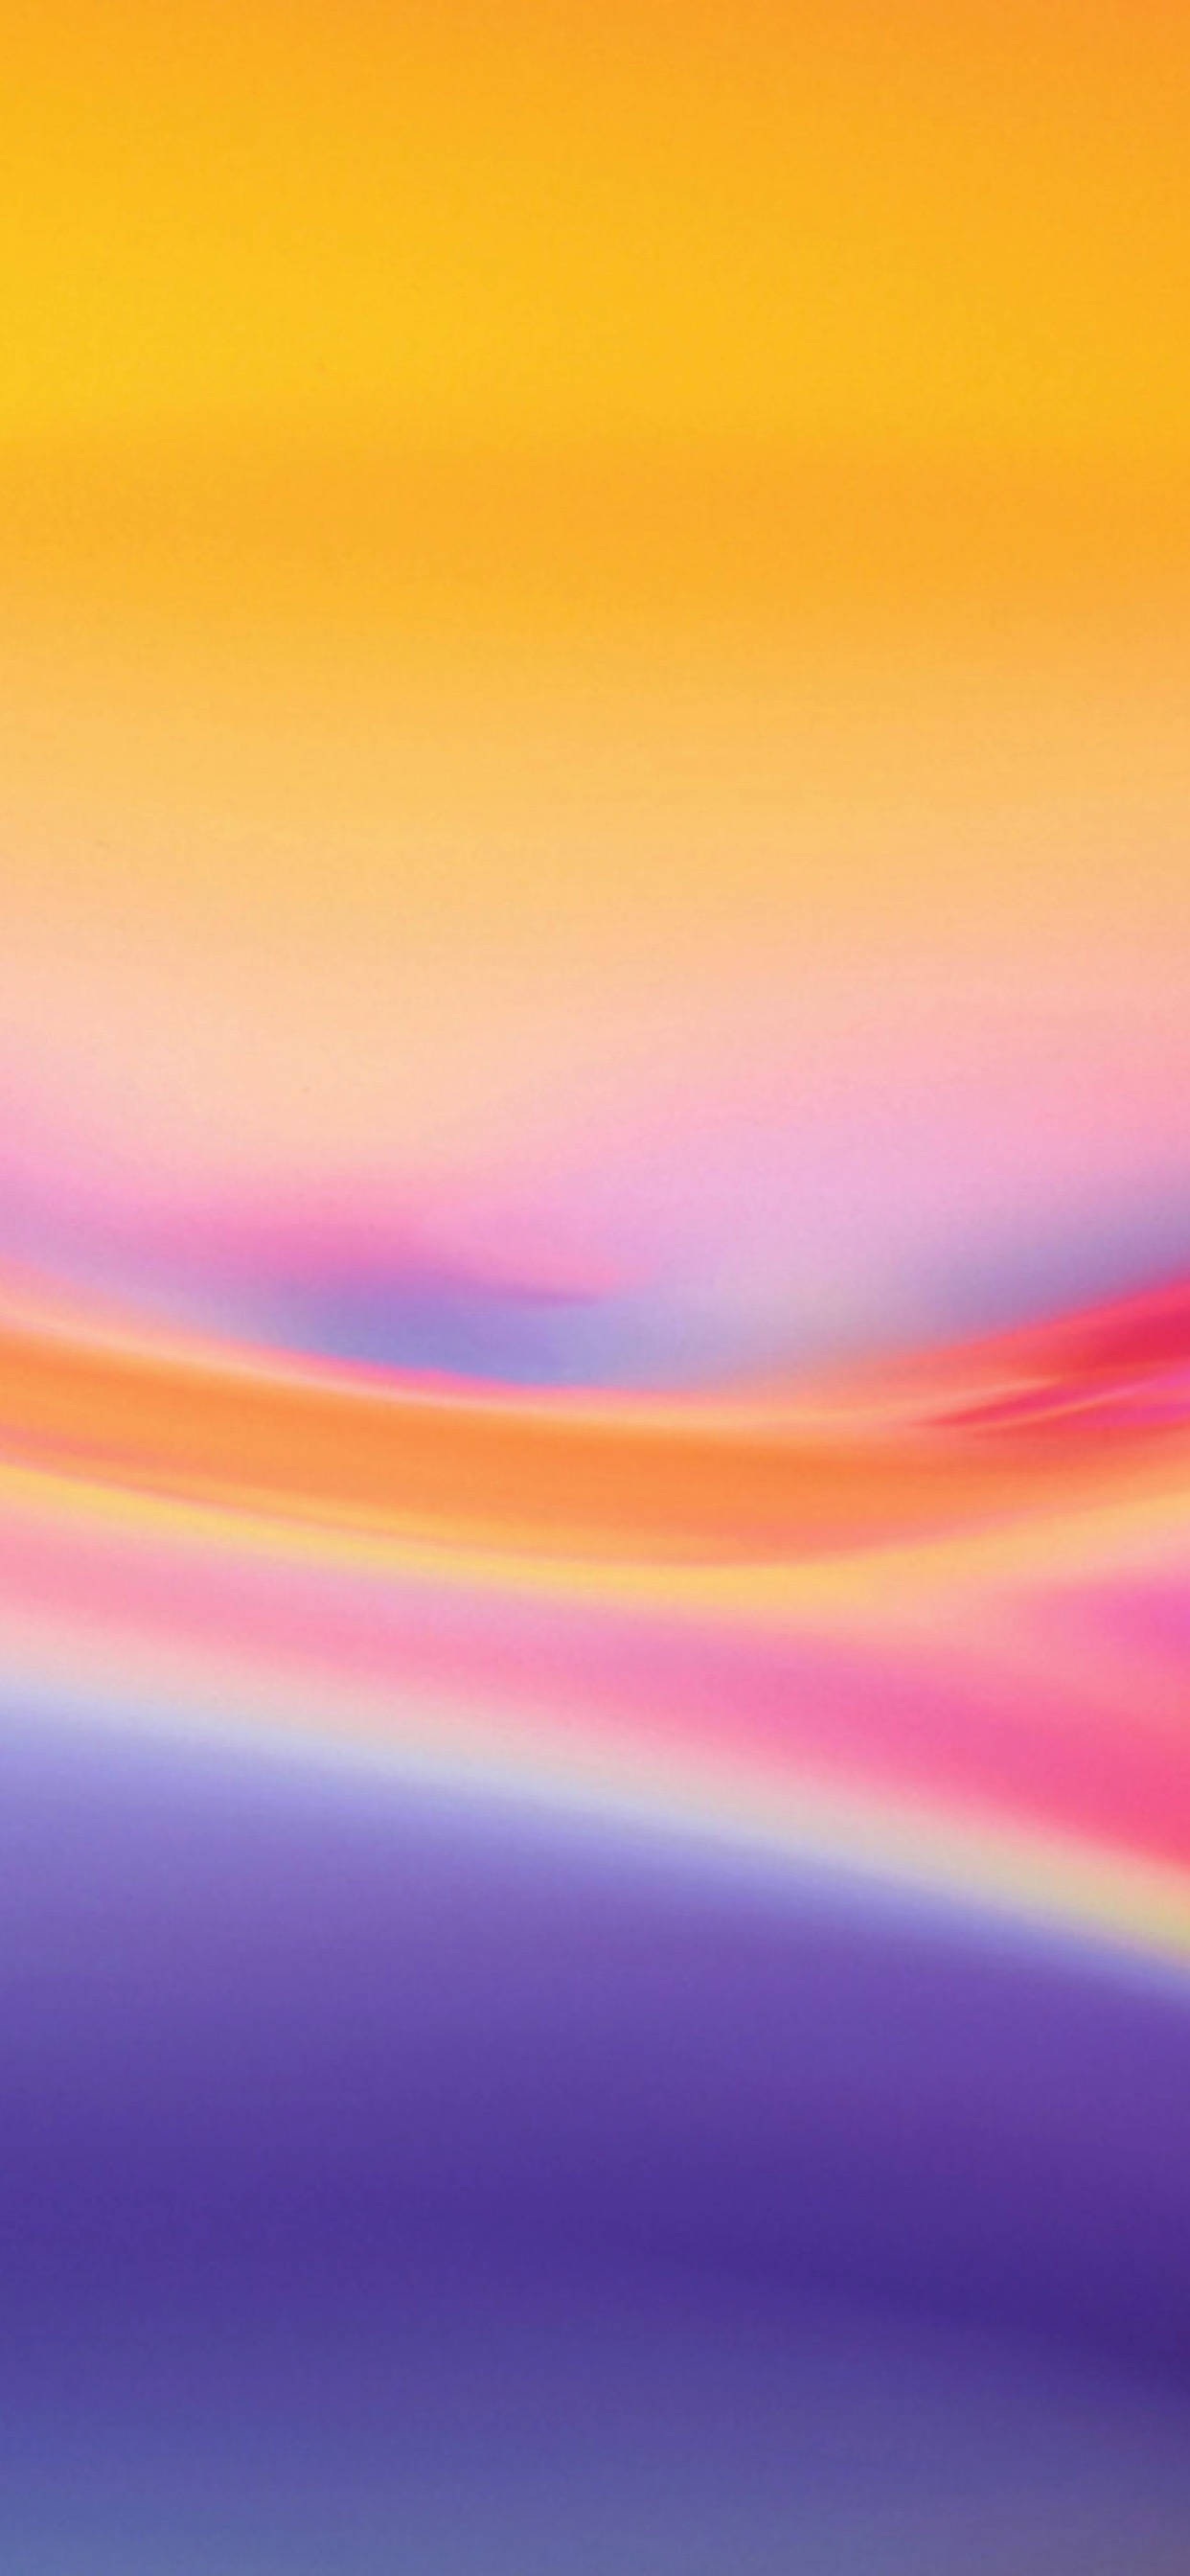 iPhone XS Max wallpaper 0004